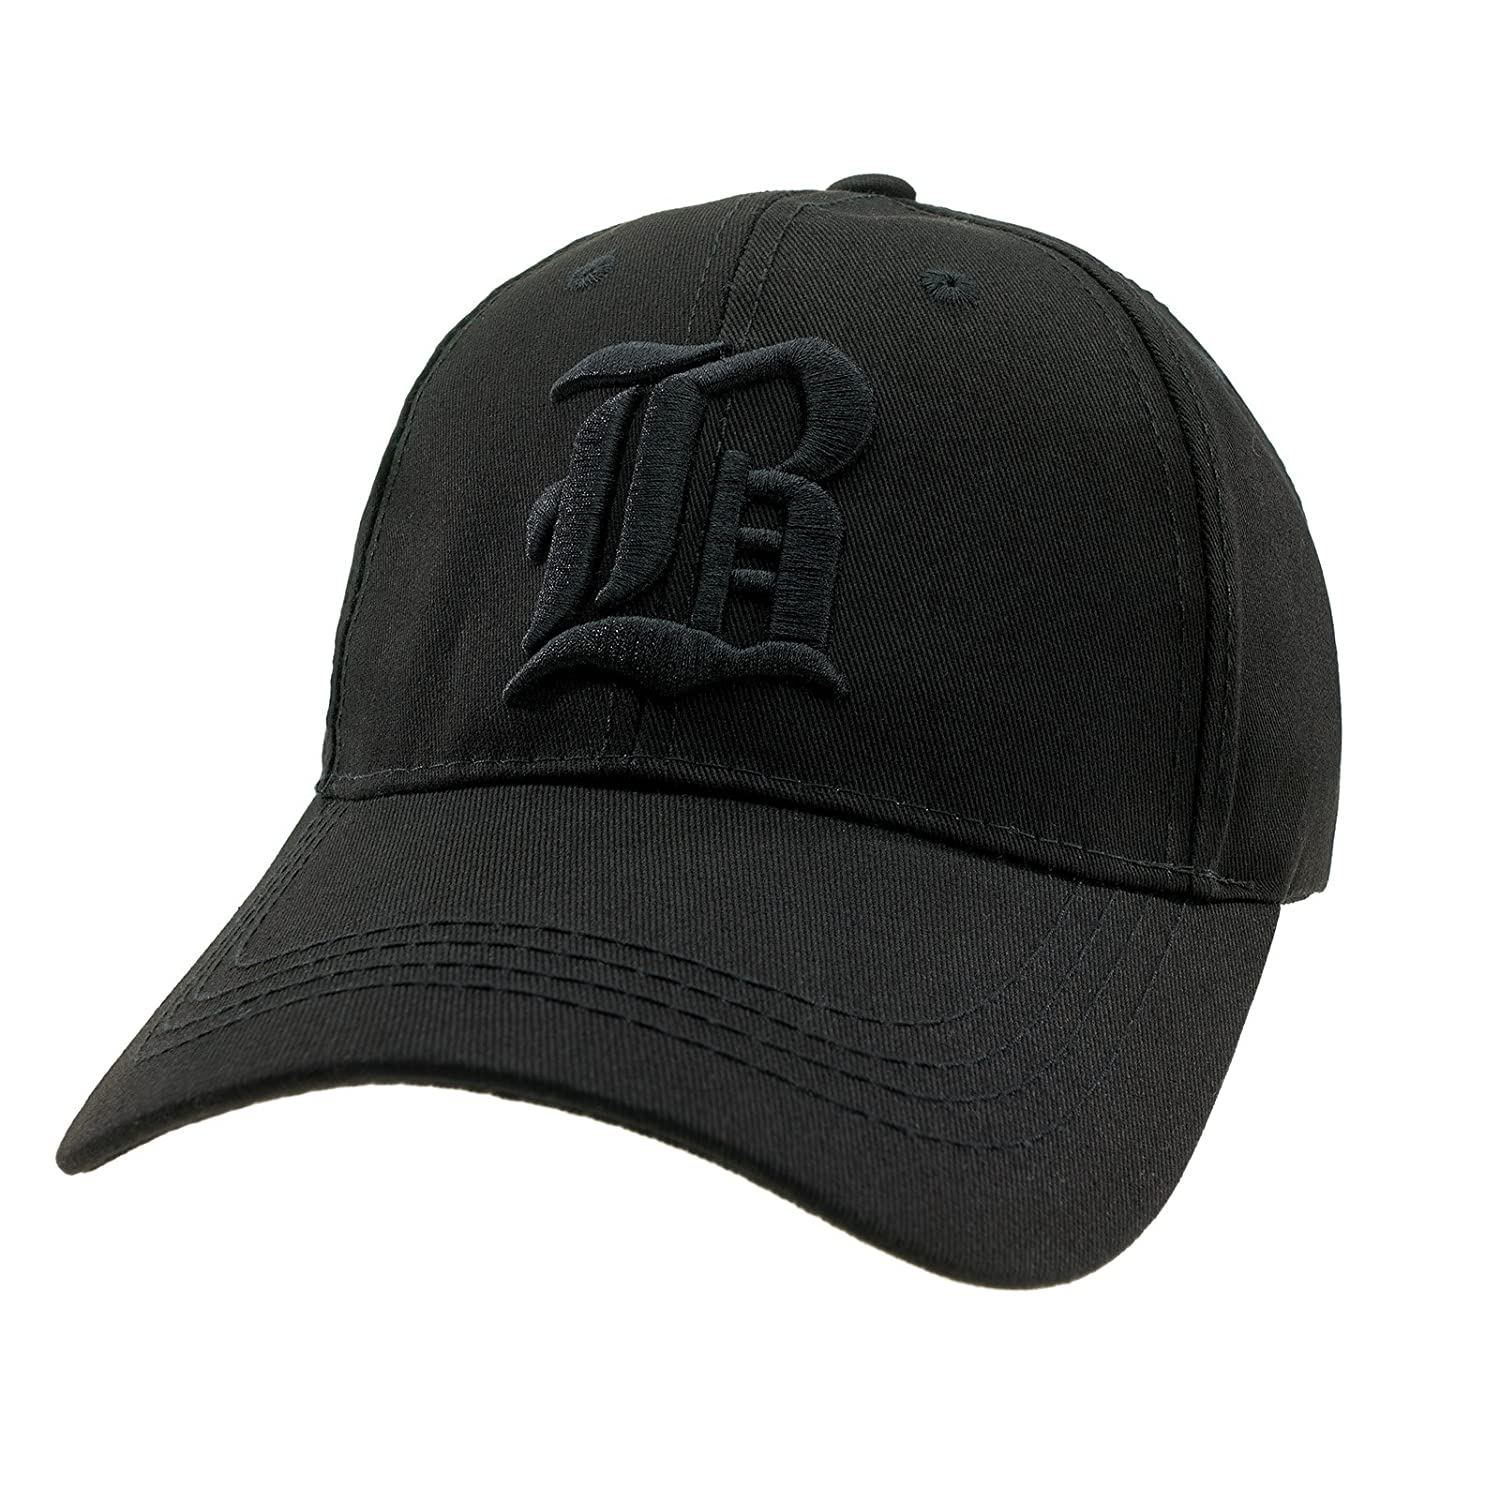 4sold Casual Baseball Gothic B Letter Cap Caps bSnap Back Hat Hats Snapback  (B Black Black)  Amazon.co.uk  Clothing eda4f5af816c